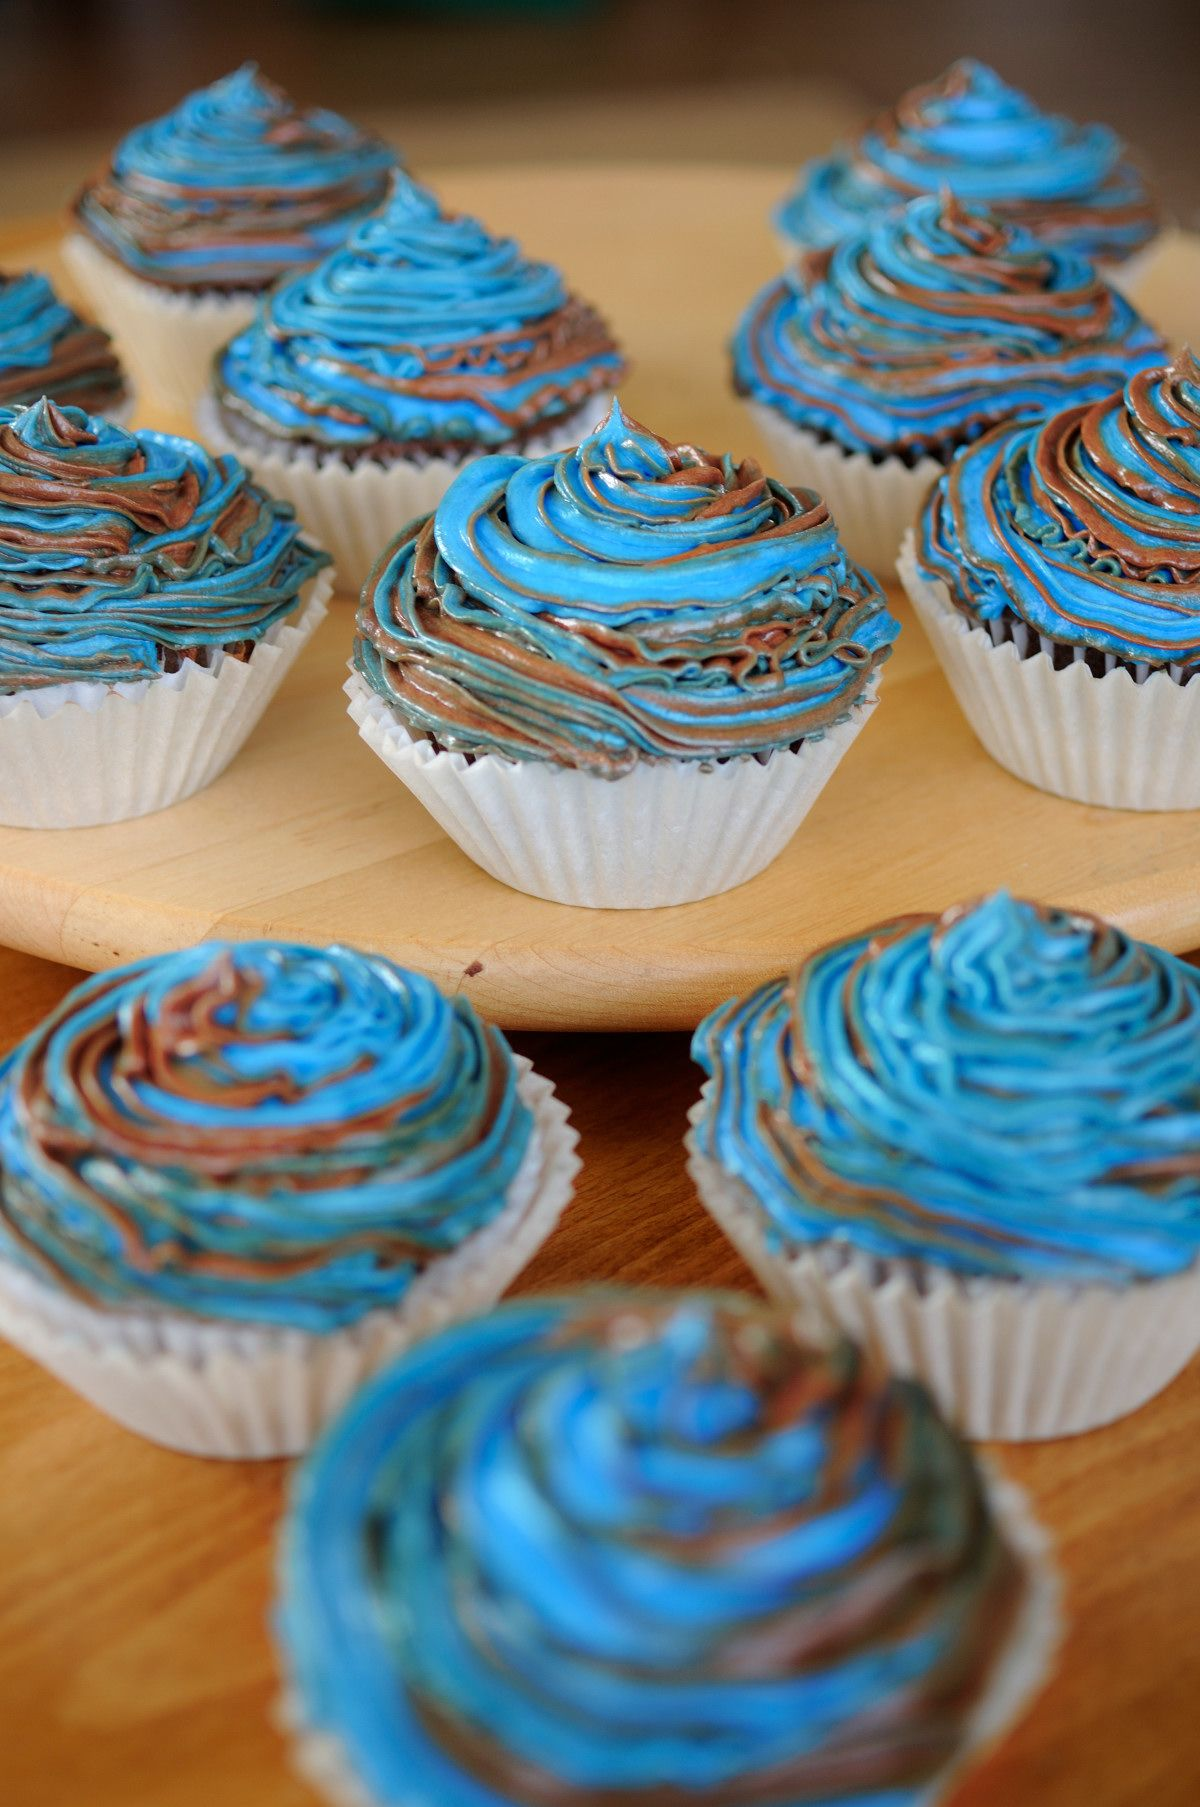 Manly Cupcakes.  Gluten-free chocolate mocha cupcakes.